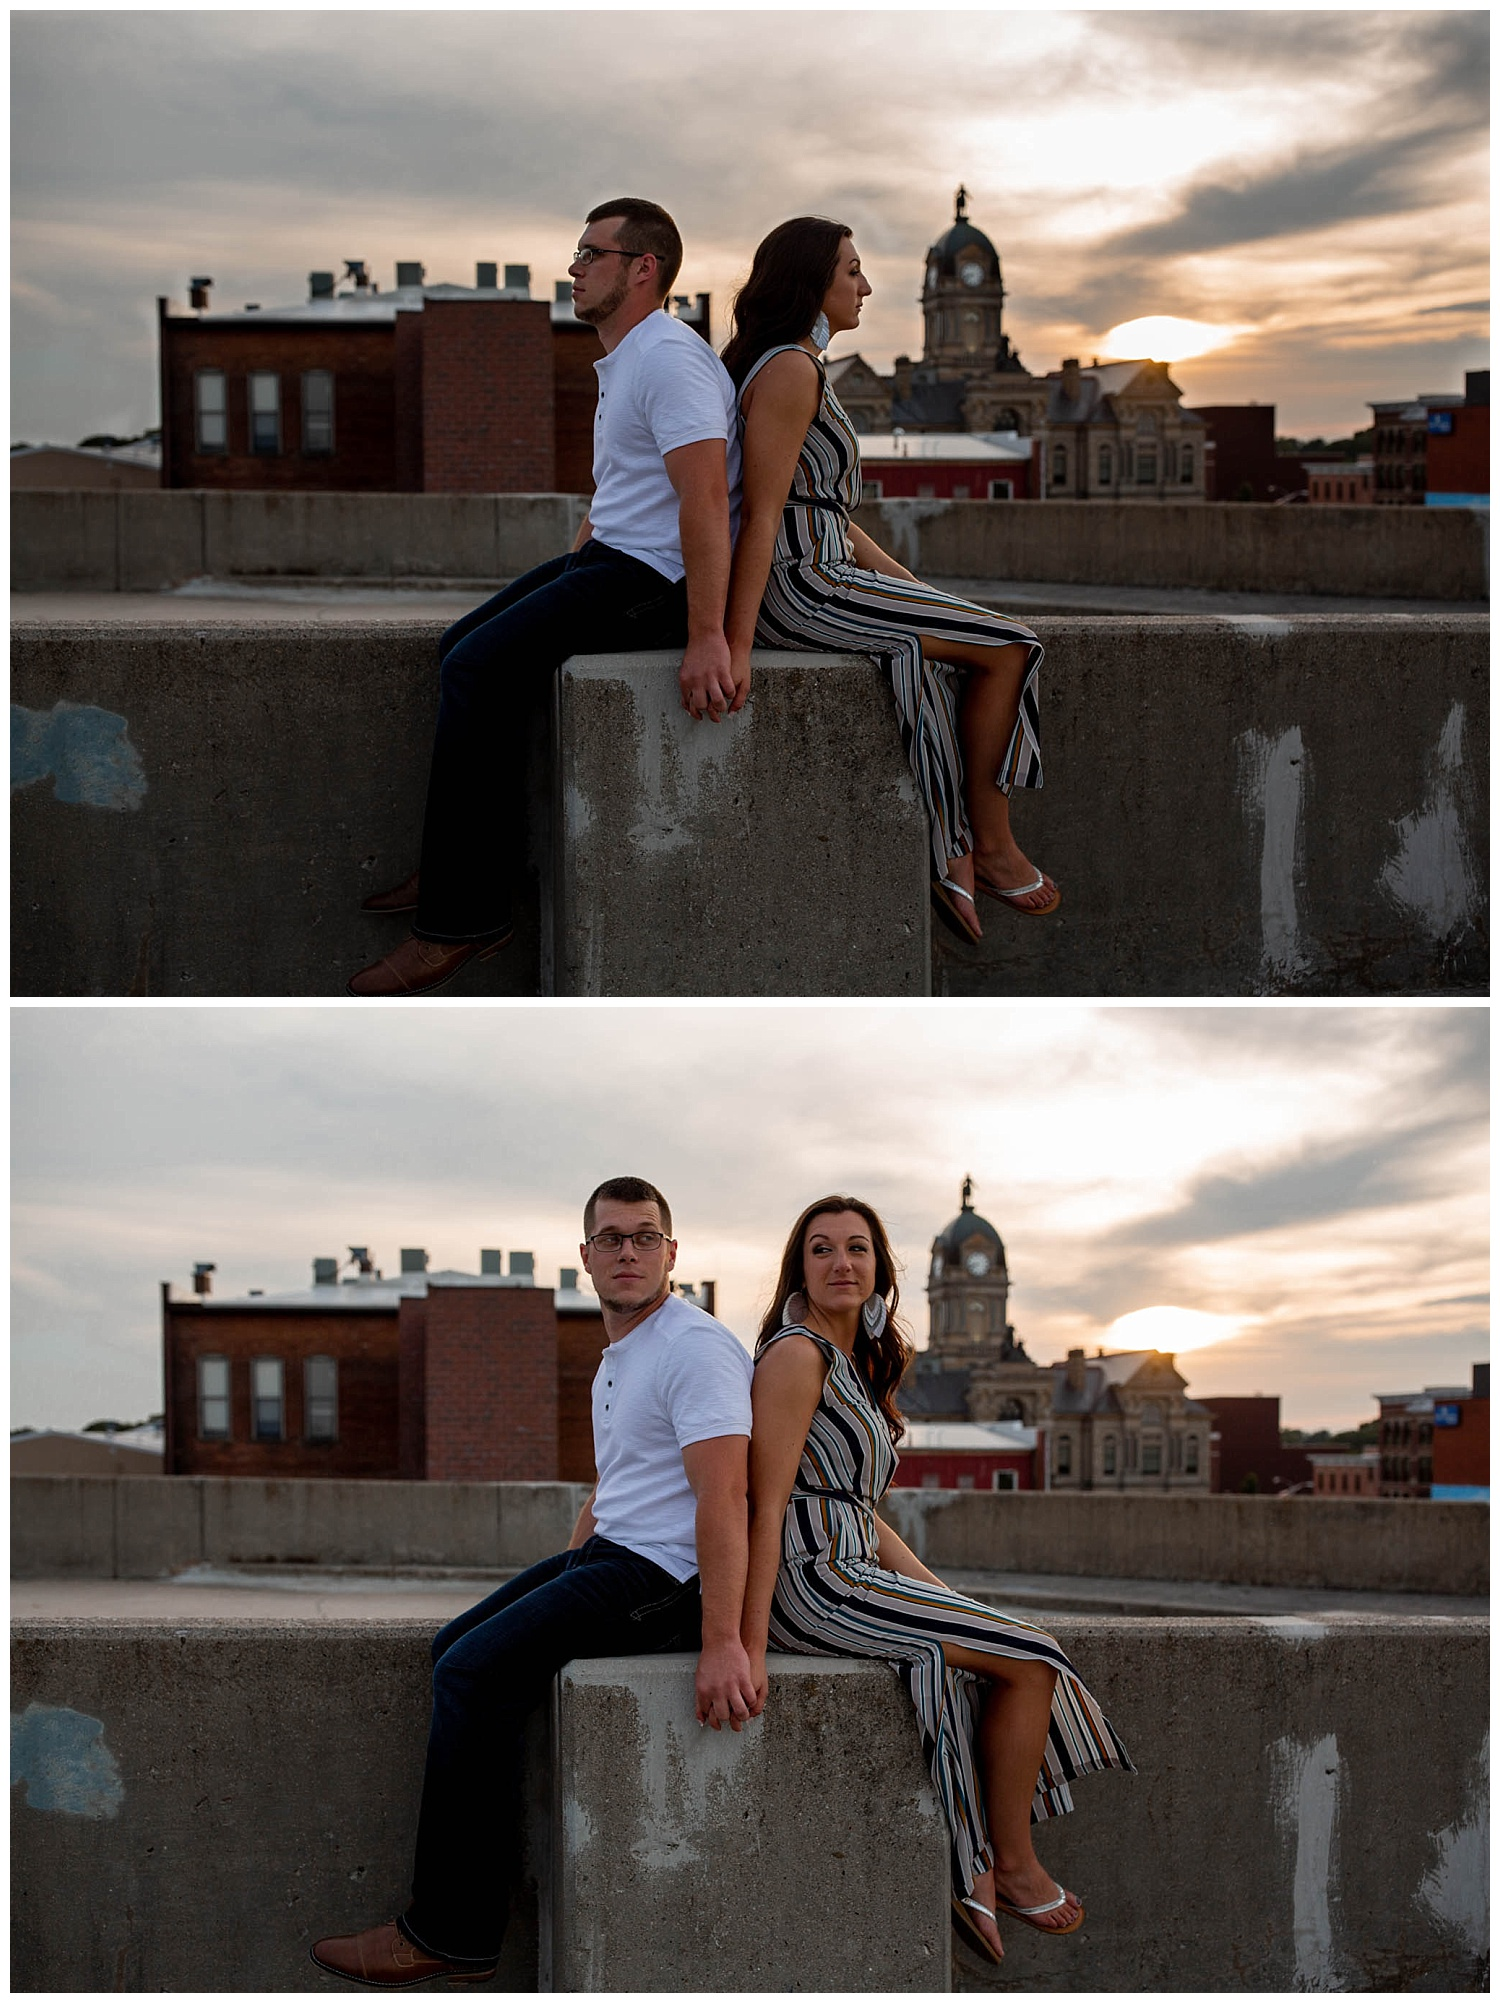 Dowtown Findlay Engagement photos. sunset parking gurage_0224.jpg